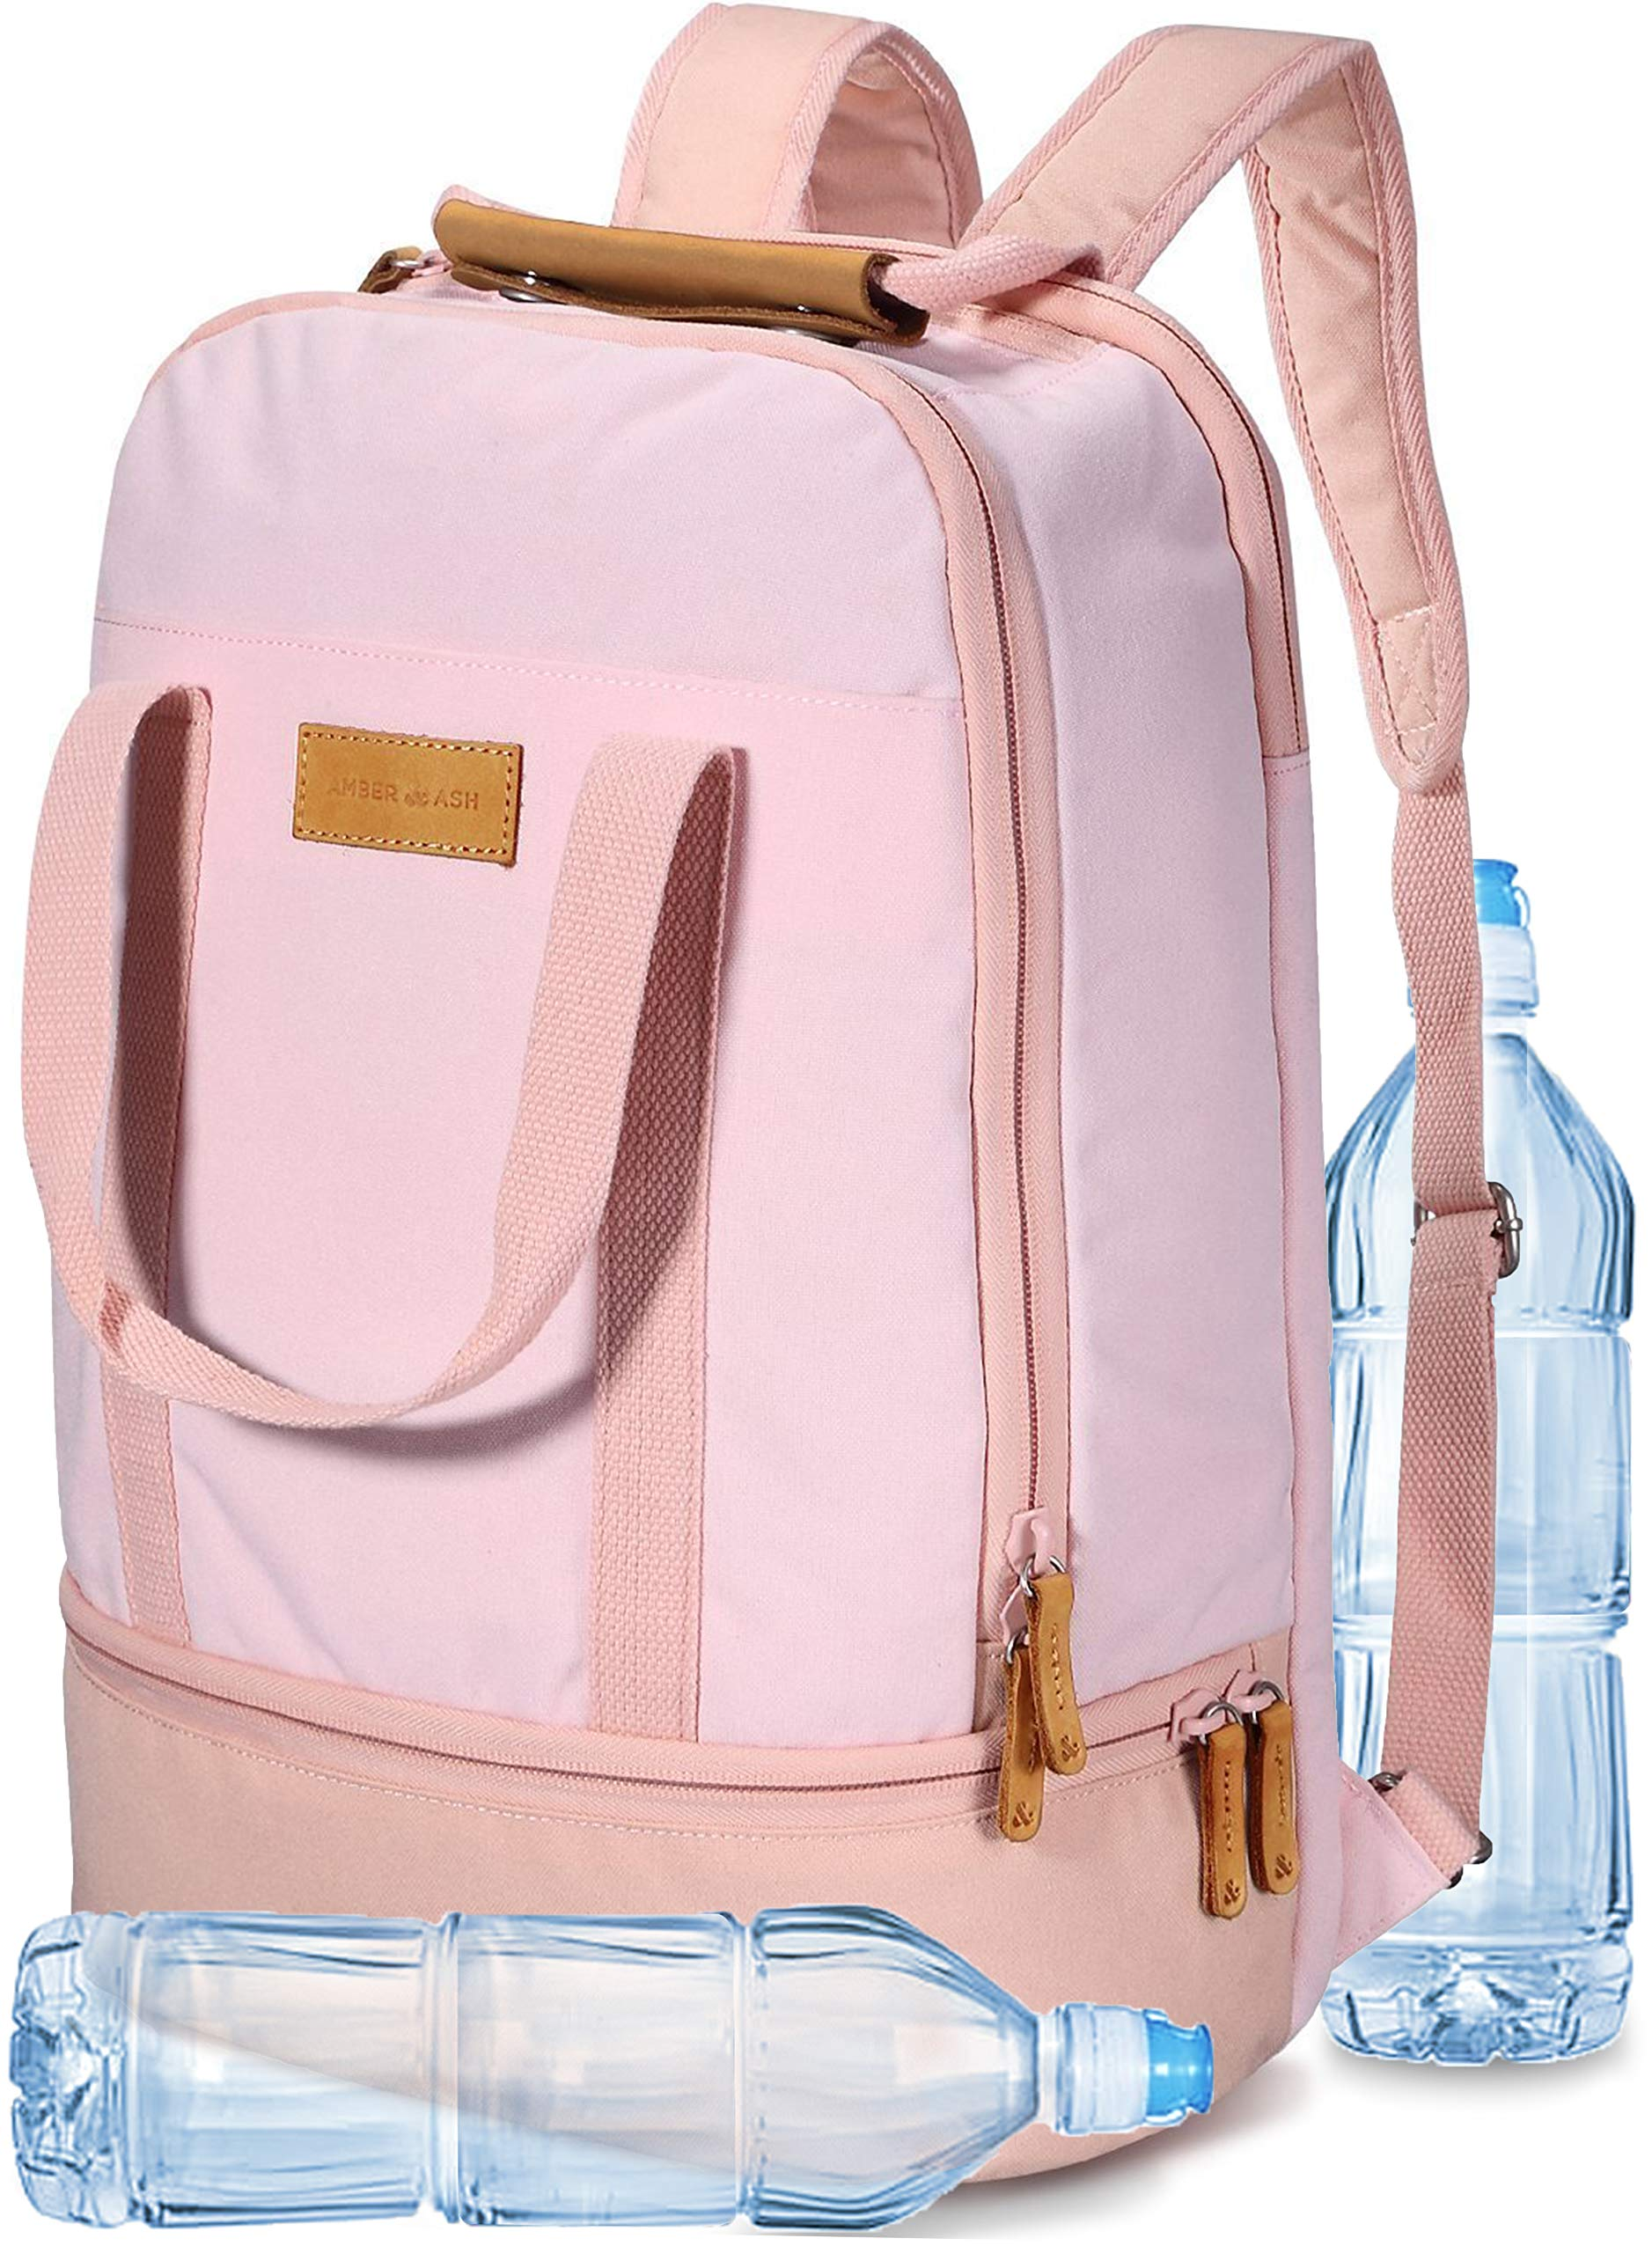 AMBER & ASH Laptop School Backpack, Business Travel Anti Theft Slim Durable Water Resistant Comuter College Bag Strap Pattern for Women Men 15.6 Inch Laptop Notebook [Pink]